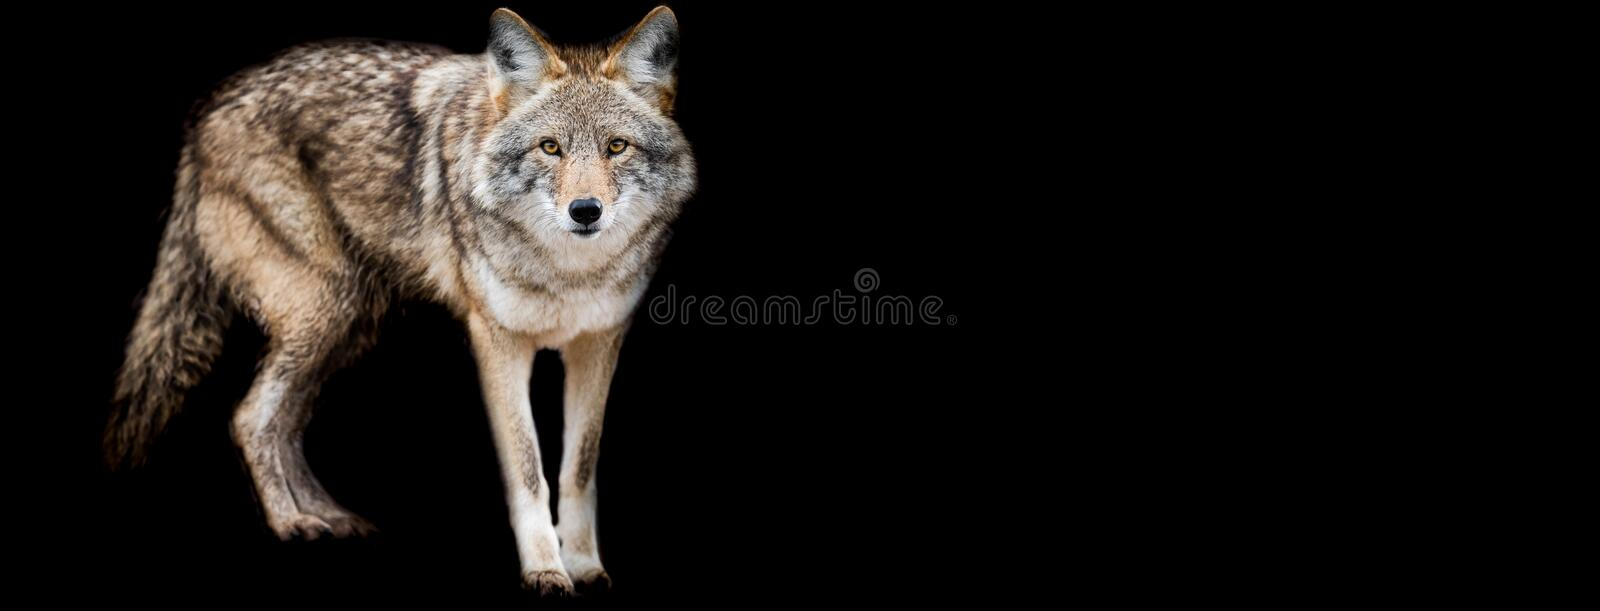 Howling Coyote Template Printable